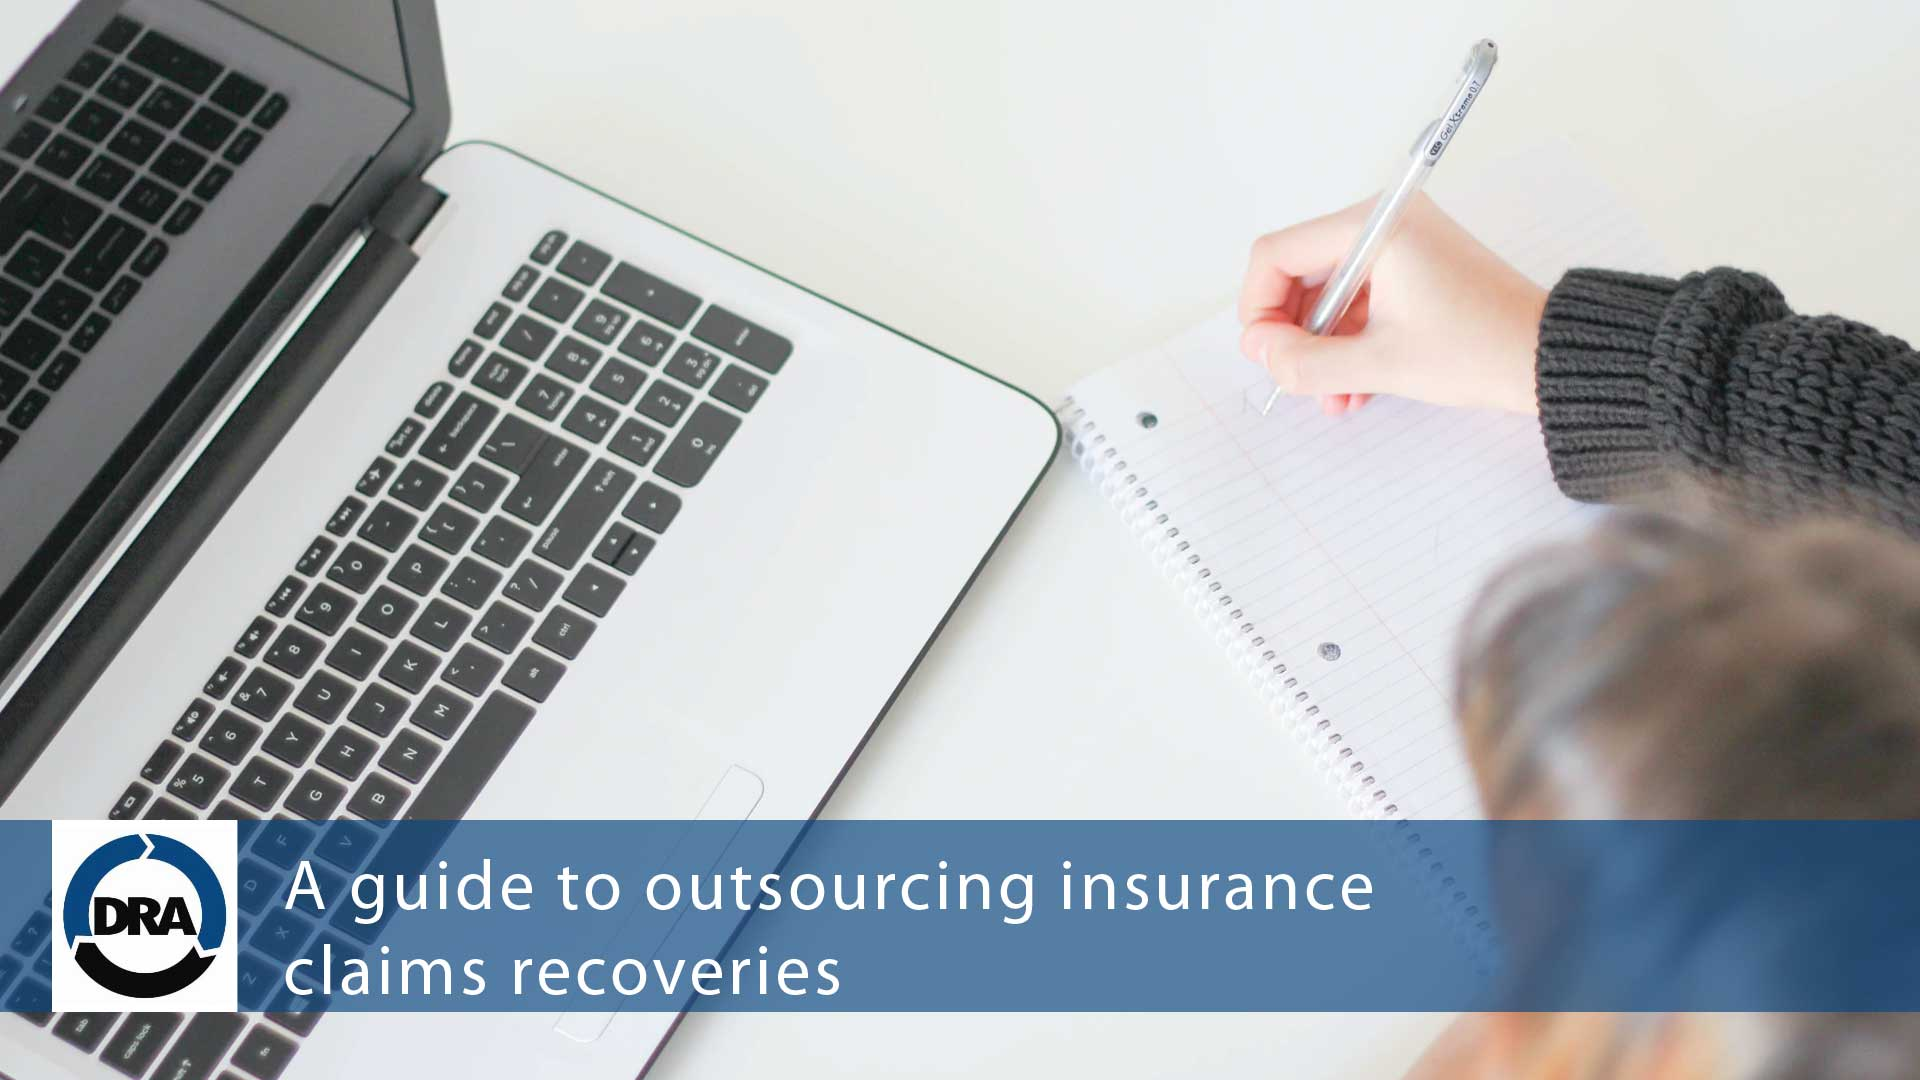 A-guide-to-outsourcing-insurance-claims-recoveries-